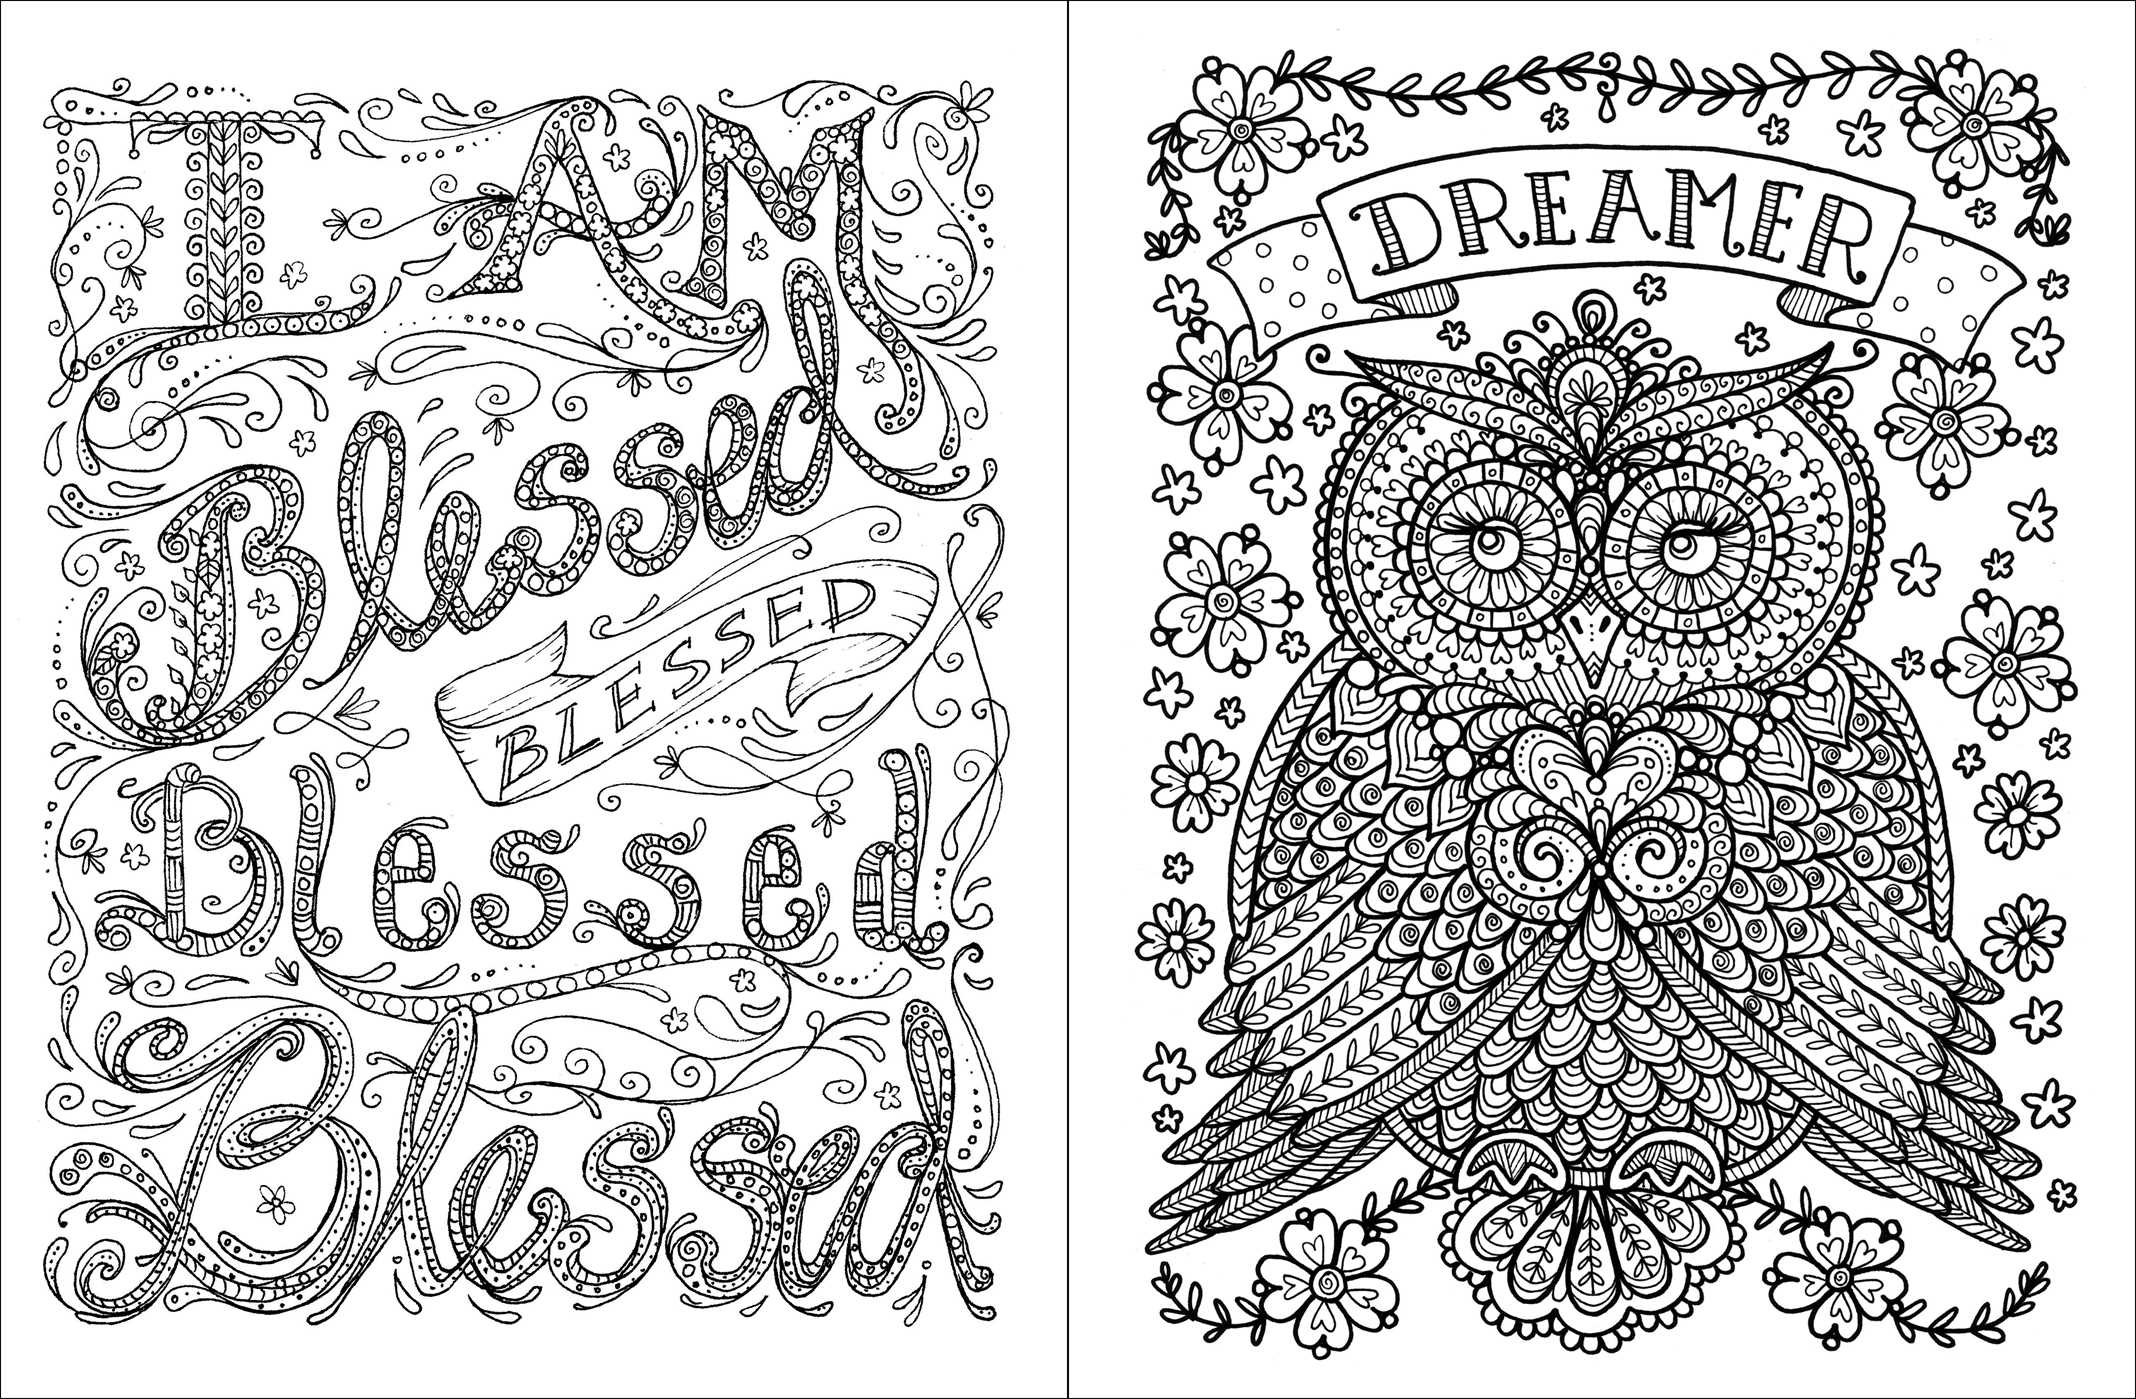 Inspirational Quotes Coloring Pages For Adults : Inspirational coloring pages to download and print for free